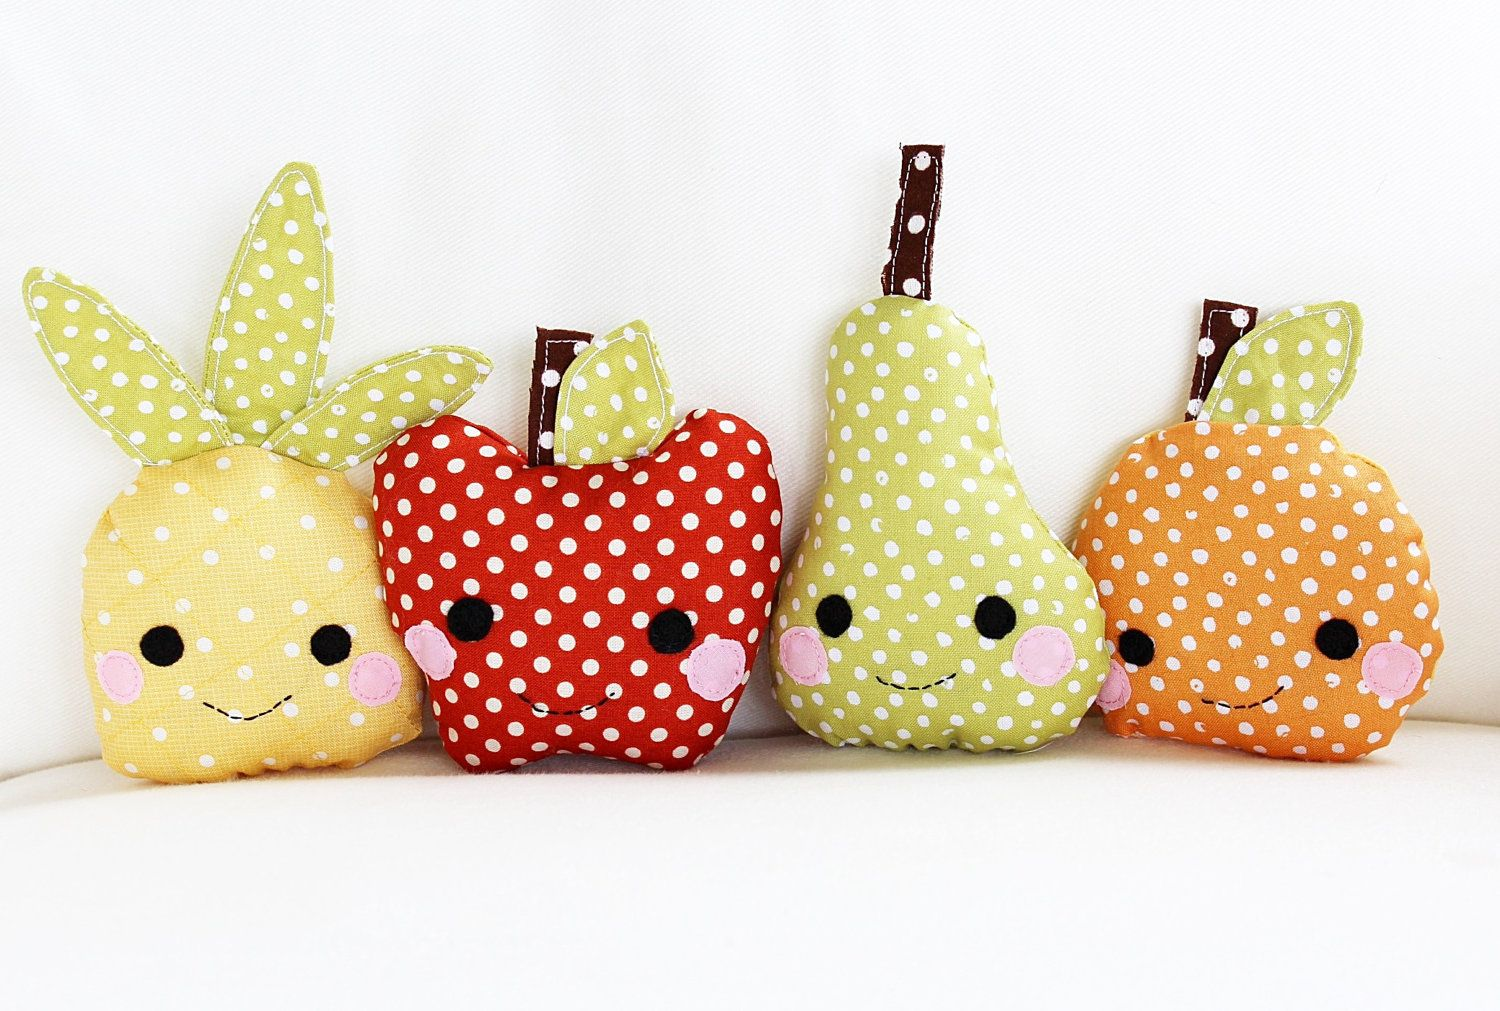 Pin by ito fumiko on cute pinterest sewing patterns toy and toy sewing pattern kawaii mini fruit pattern baby toys party favors pdf pattern via etsy jeuxipadfo Choice Image